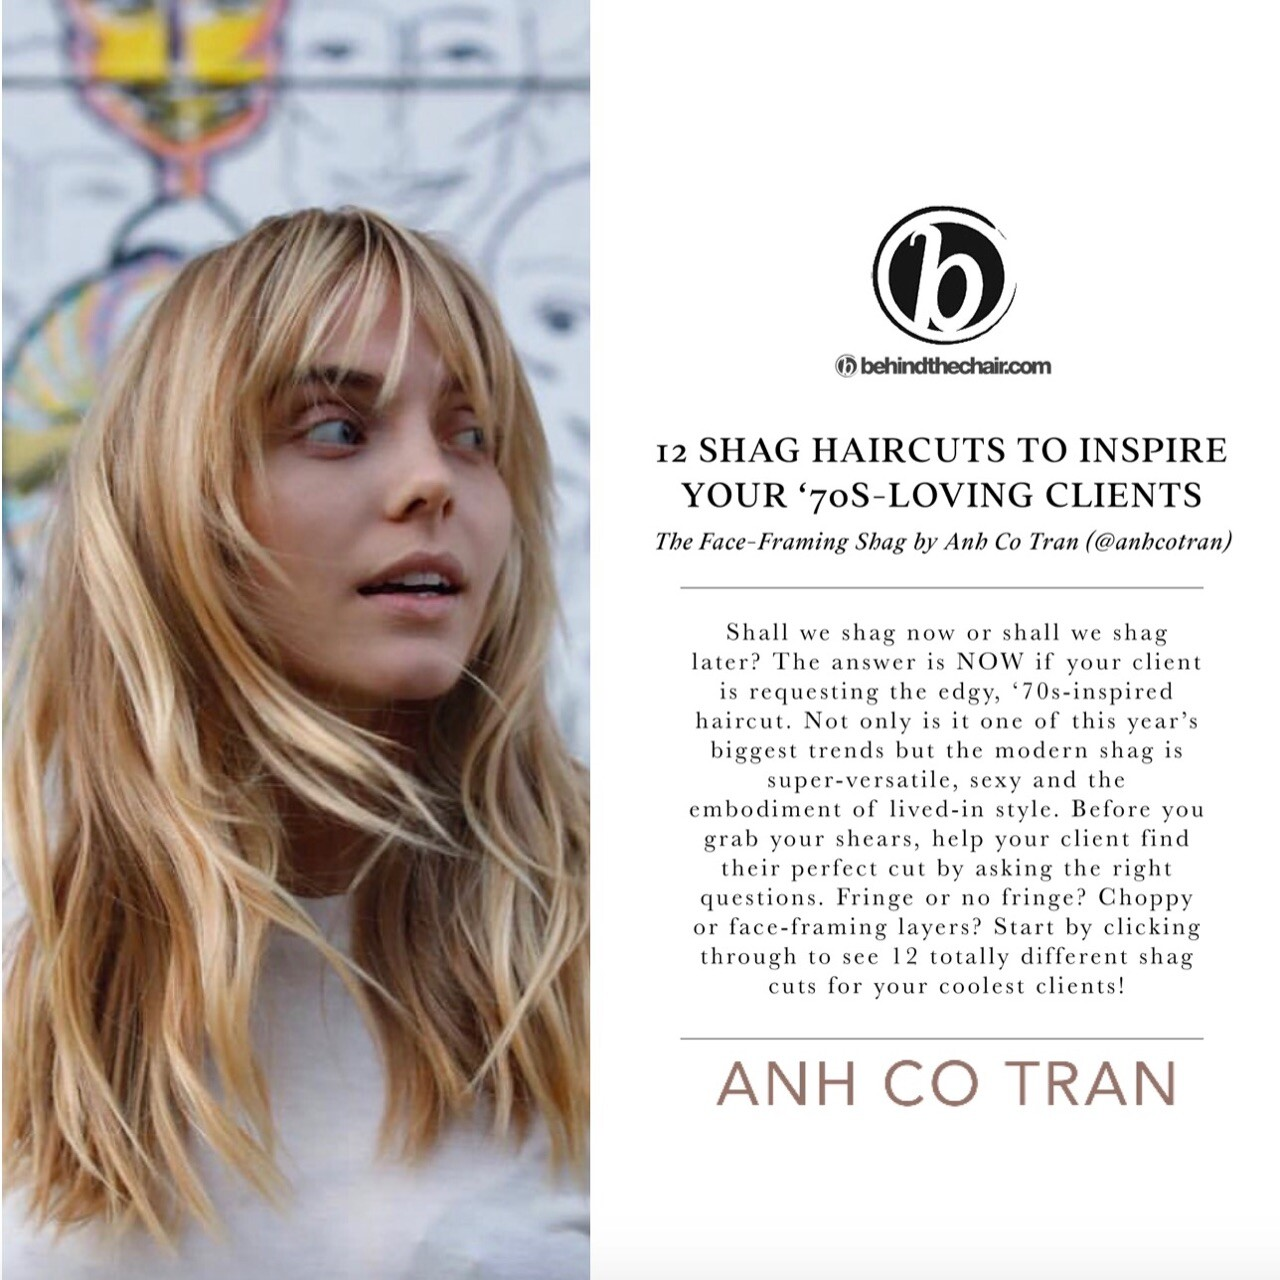 Press   Anh Co Tran Celebrity Hair Stylist - Anh Co Tran